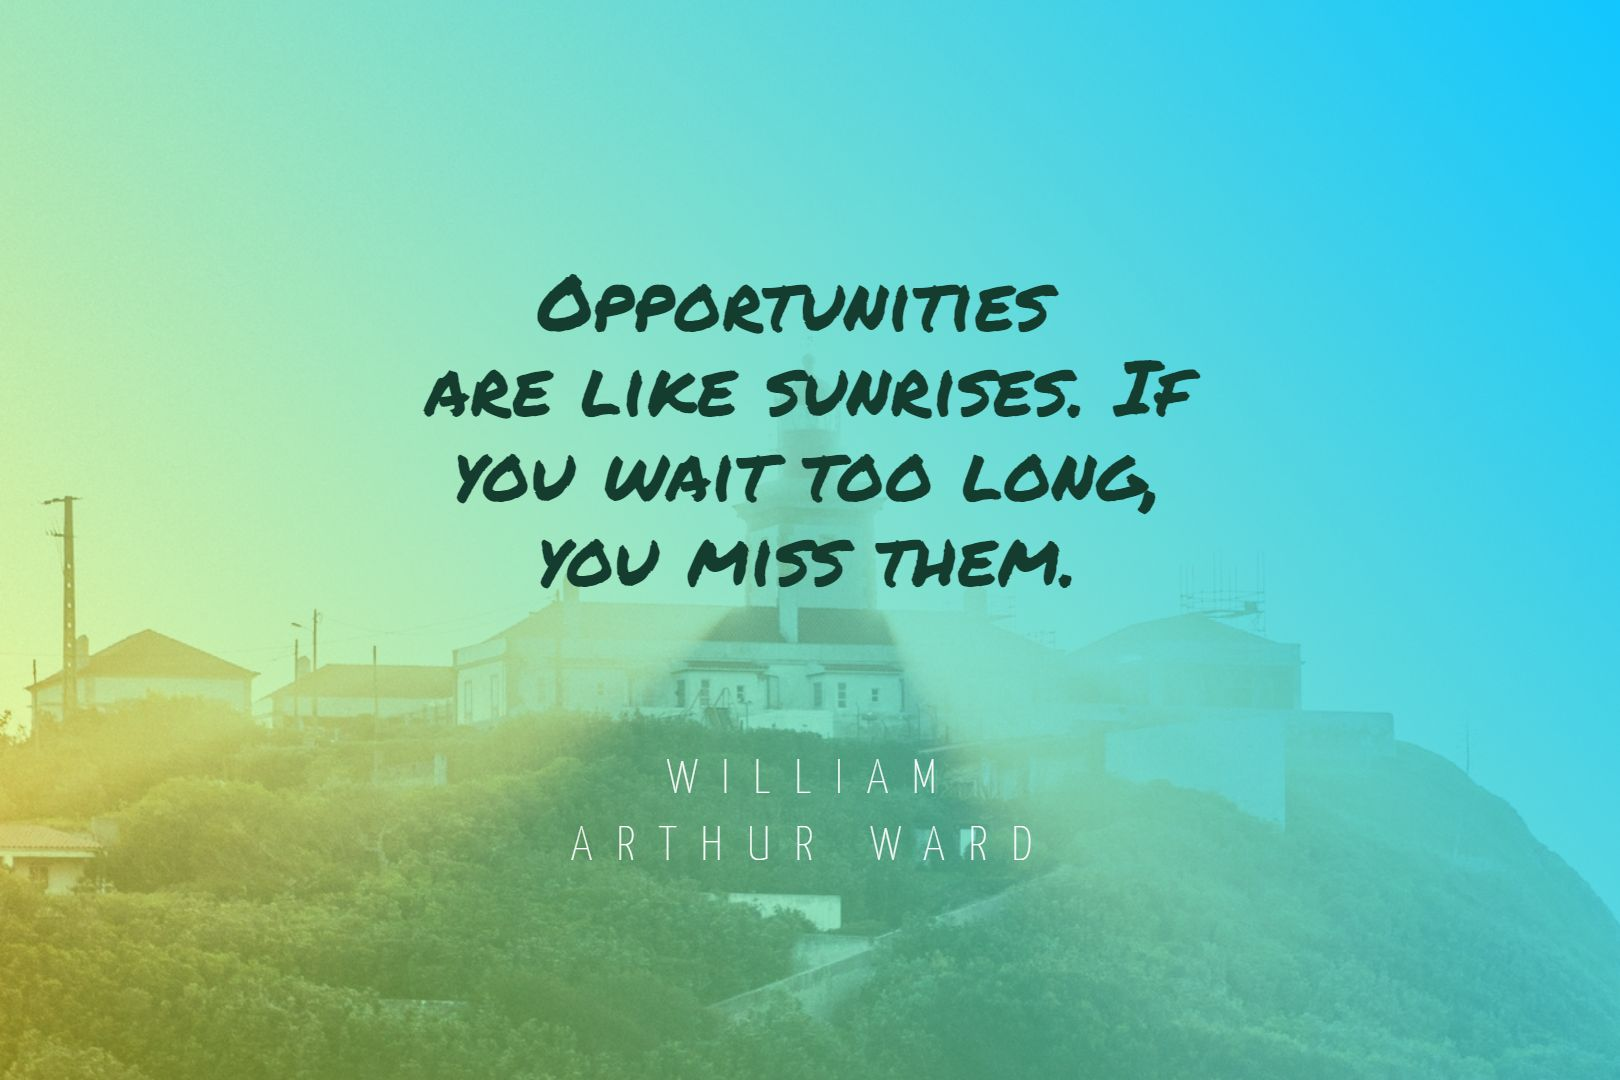 Quotes image of Opportunities are like sunrises. If you wait too long, you miss them.